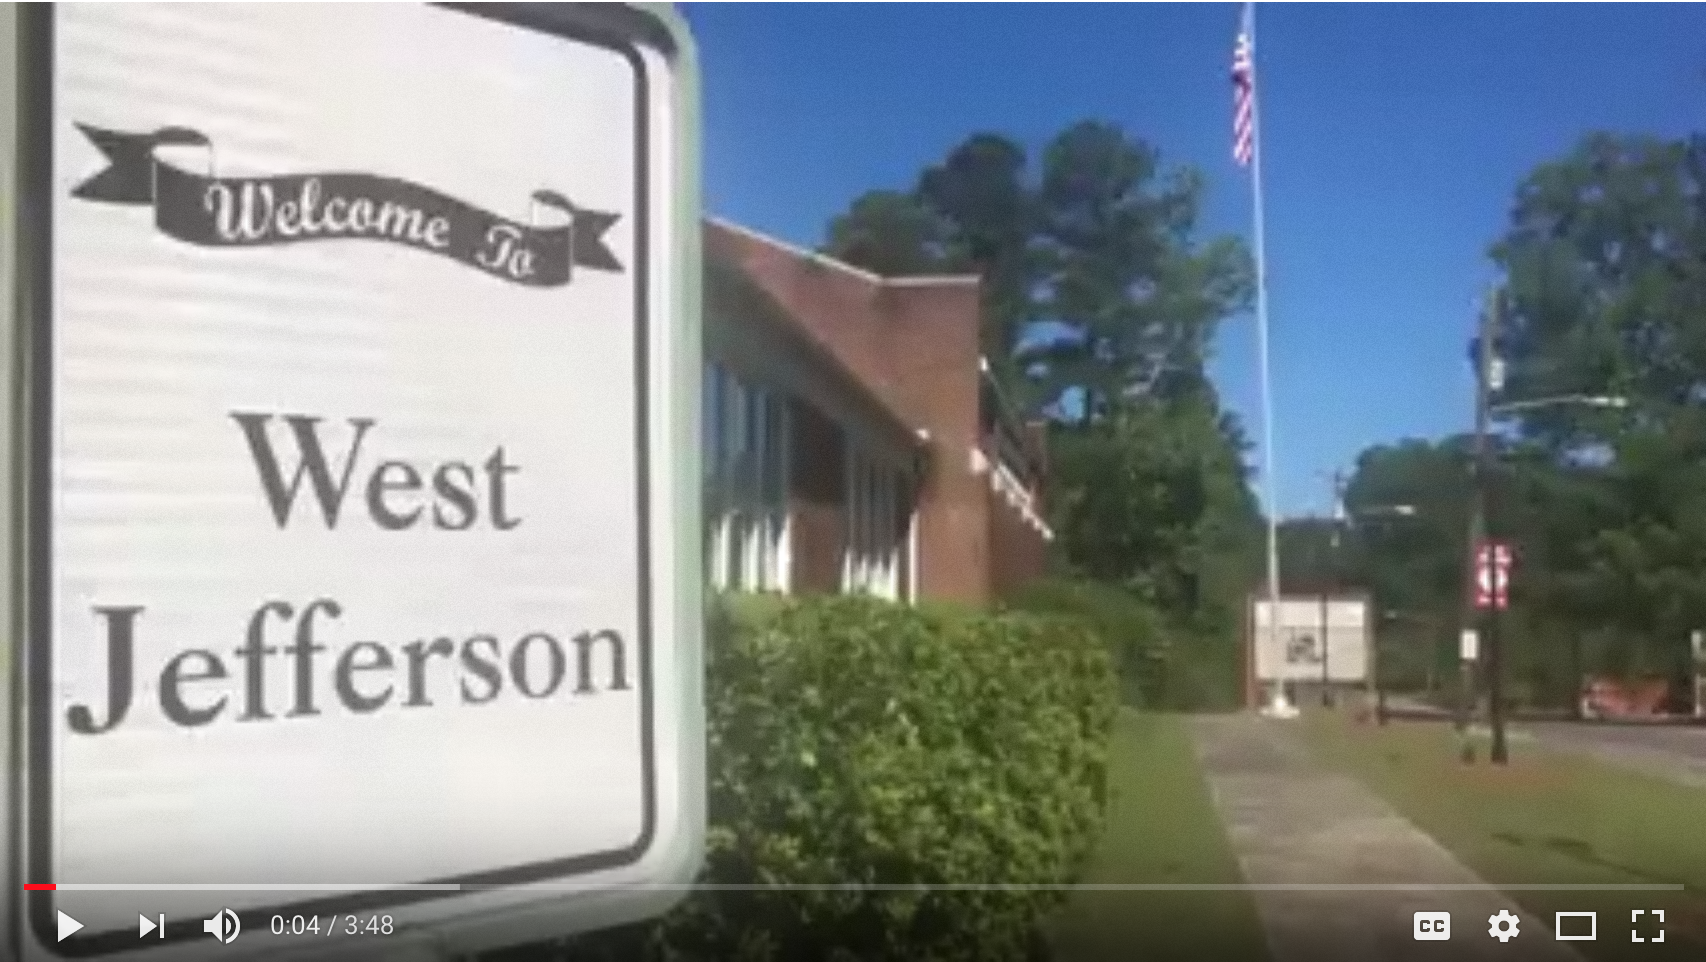 Video production image for Town of West Jefferson